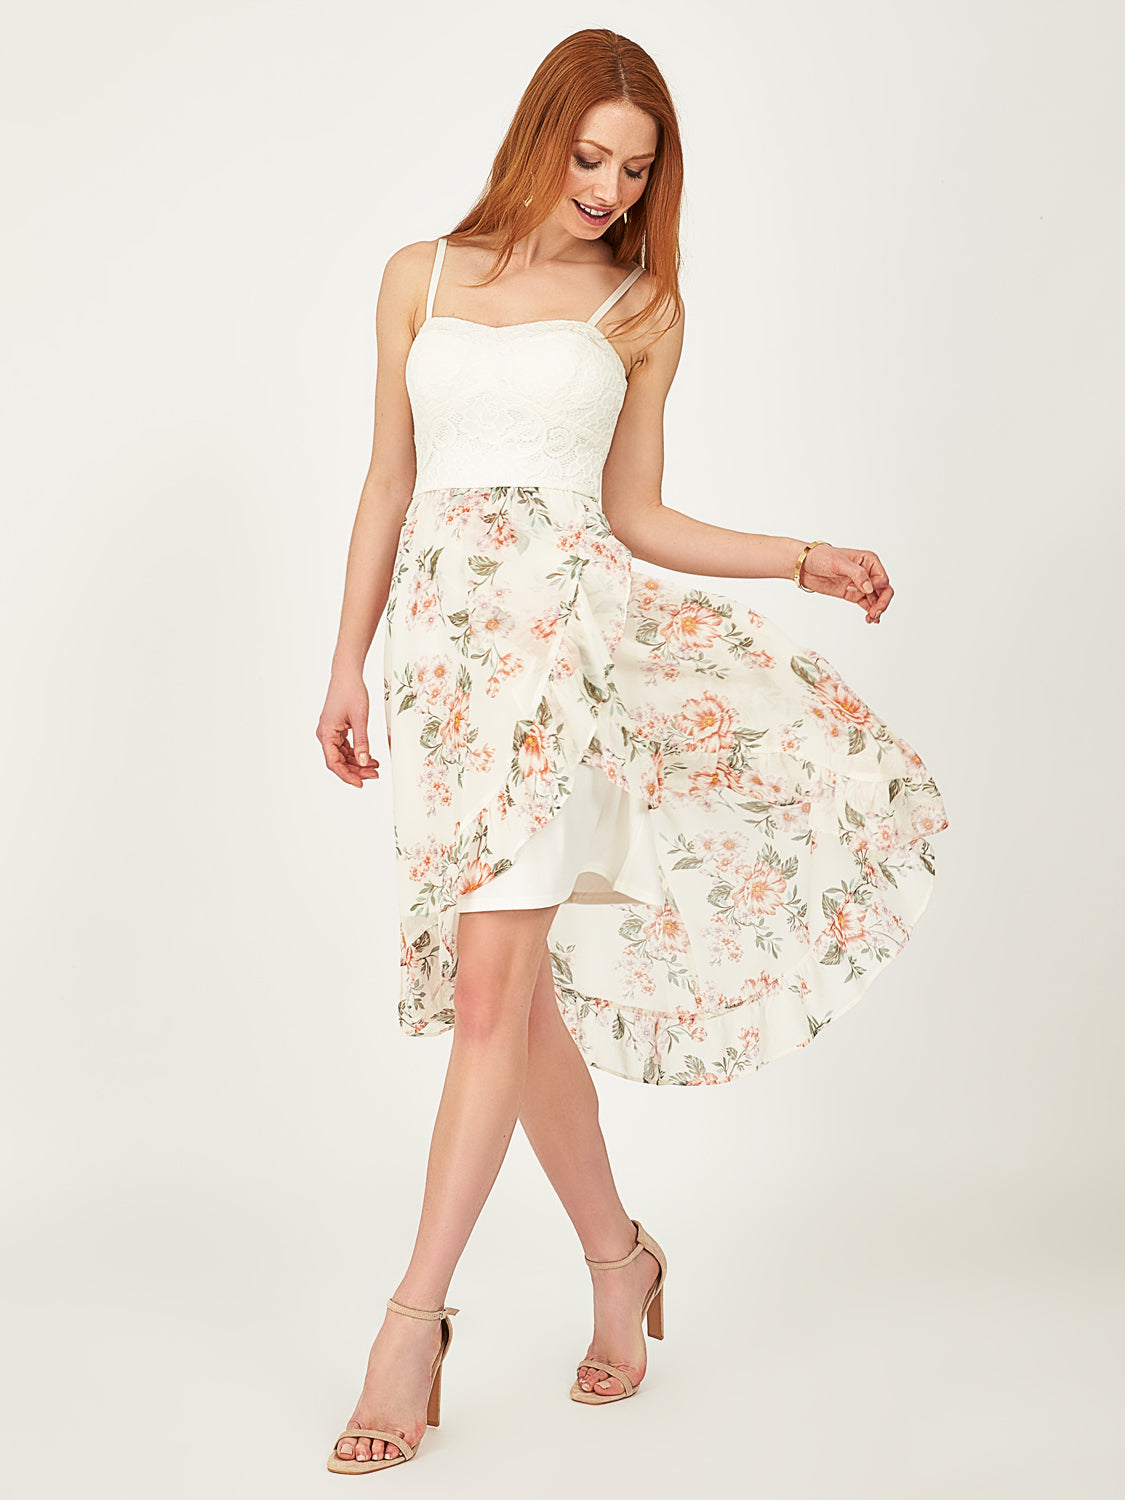 Floral Lace Chiffon Dress